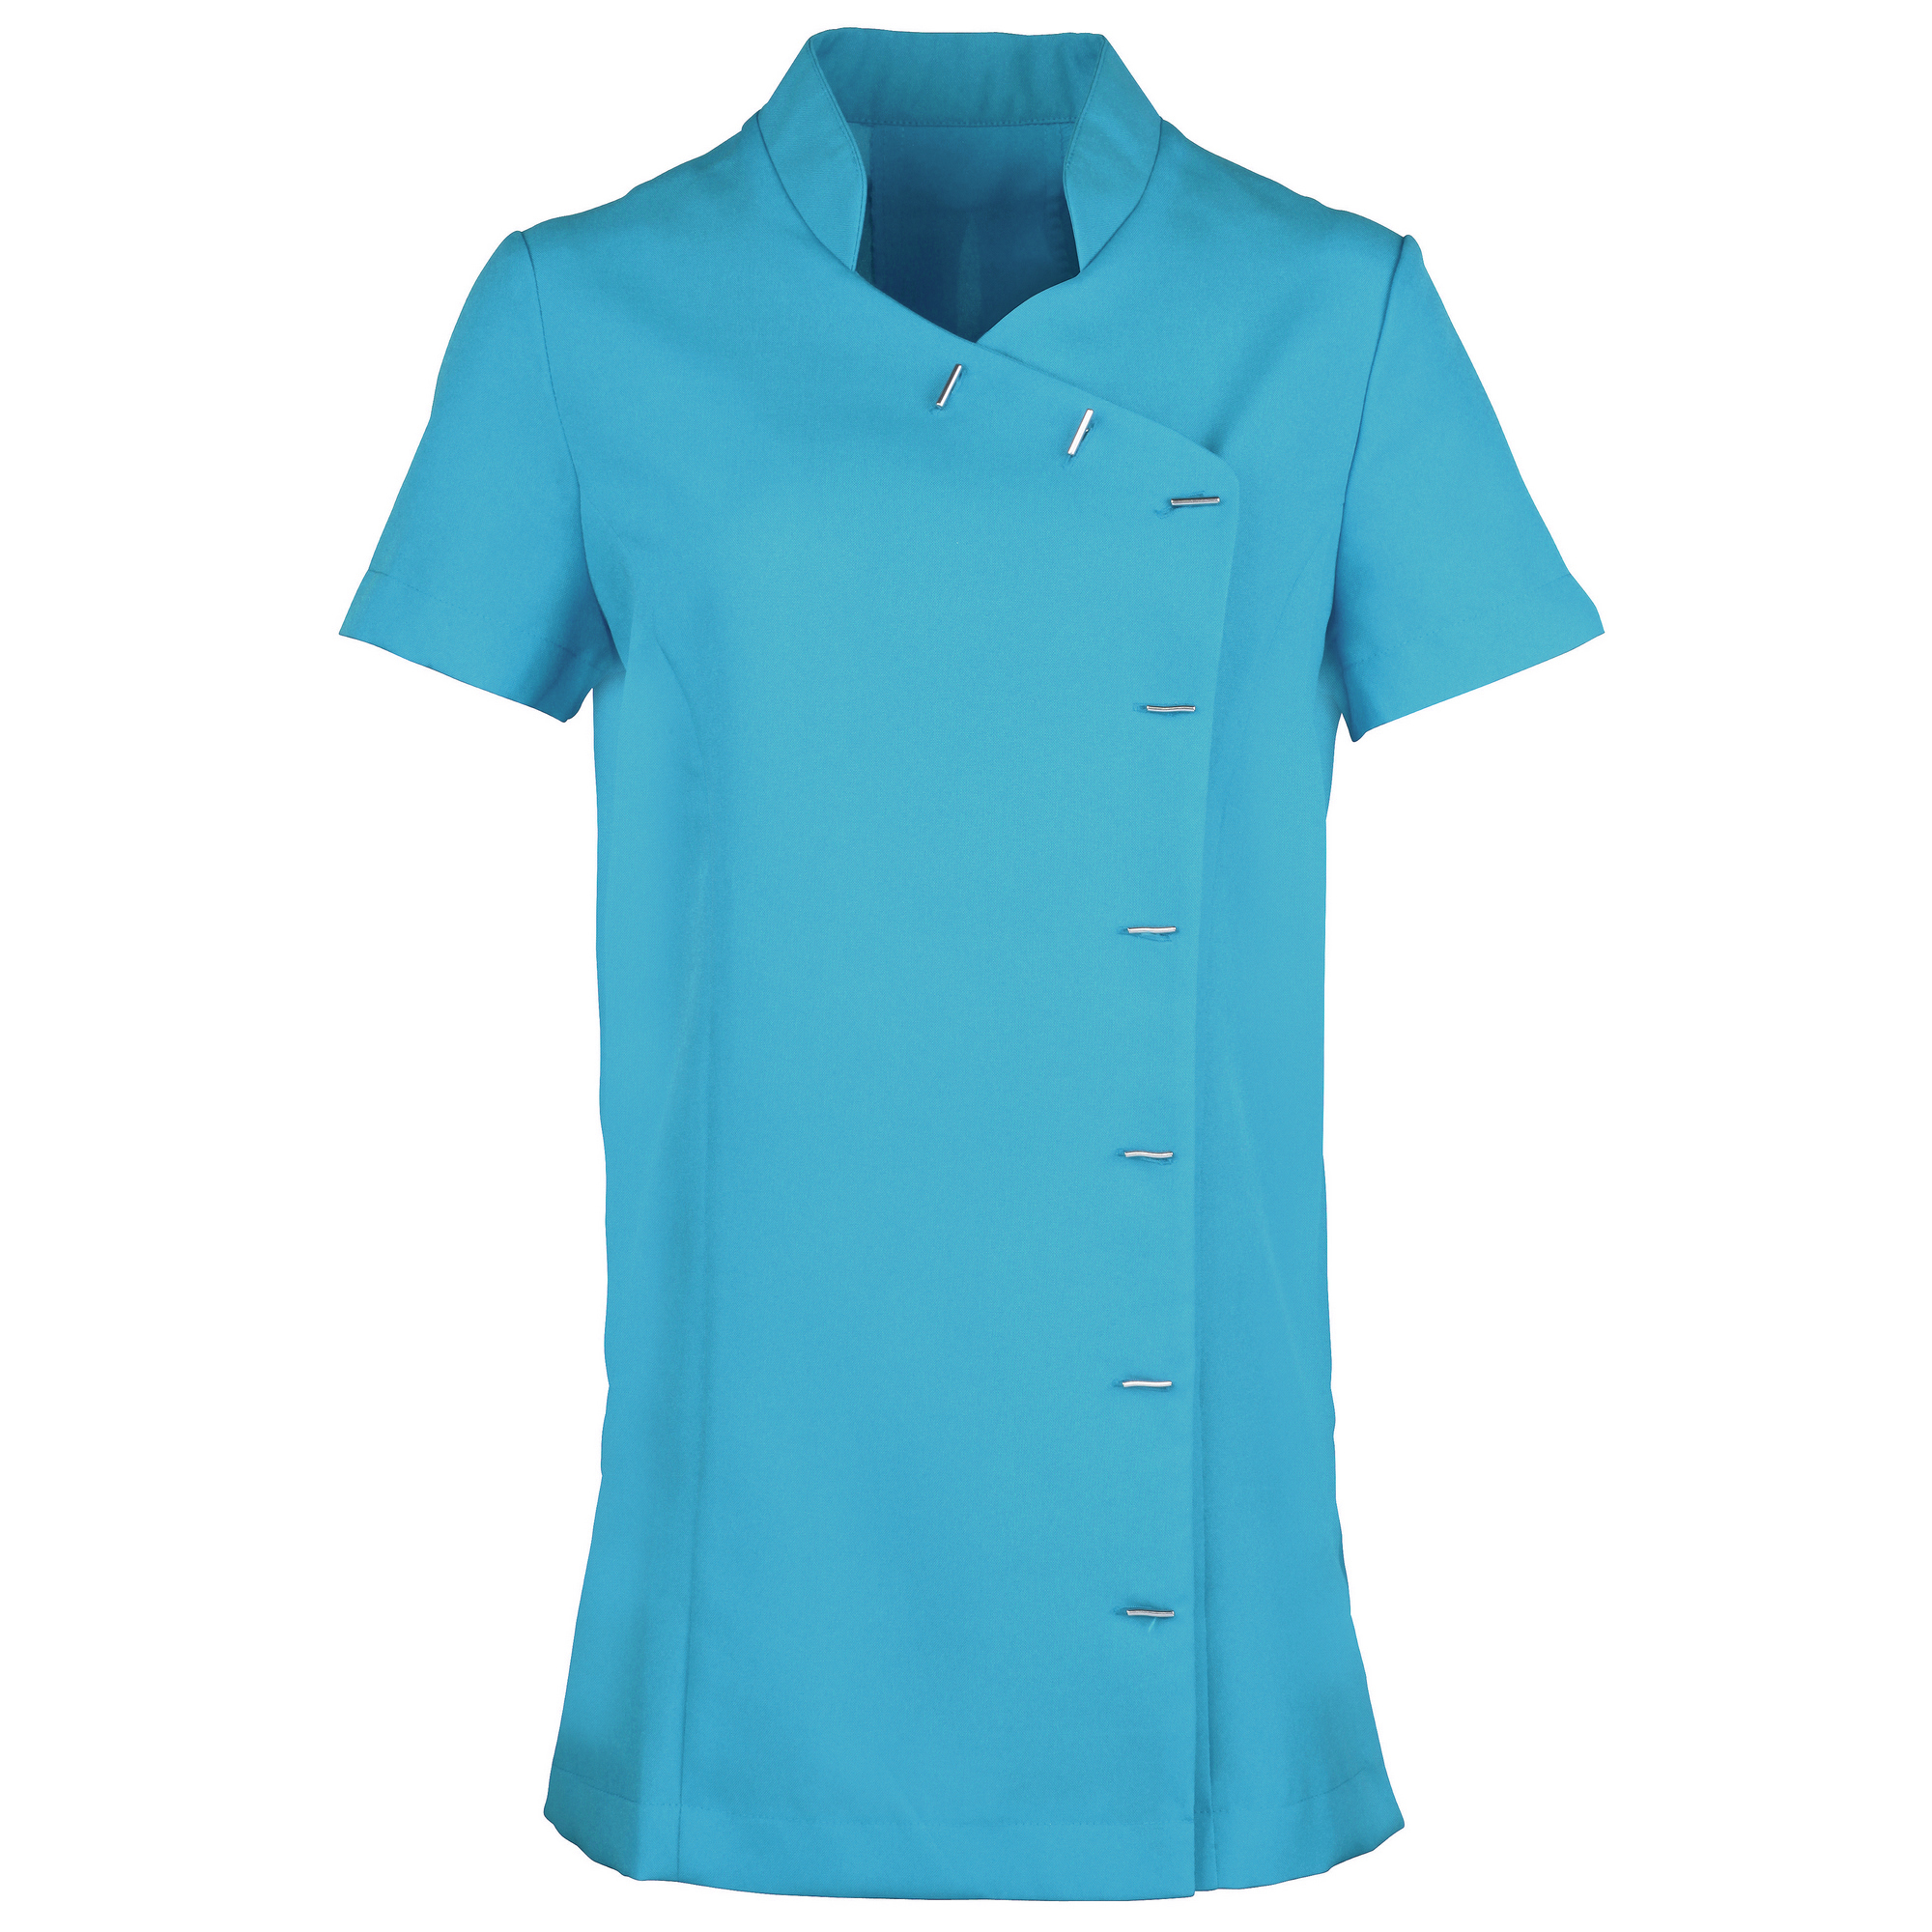 Premier Womens/Ladies *Orchid* Tunic / Health Beauty & Spa / Workwear (14) (Turquoise)